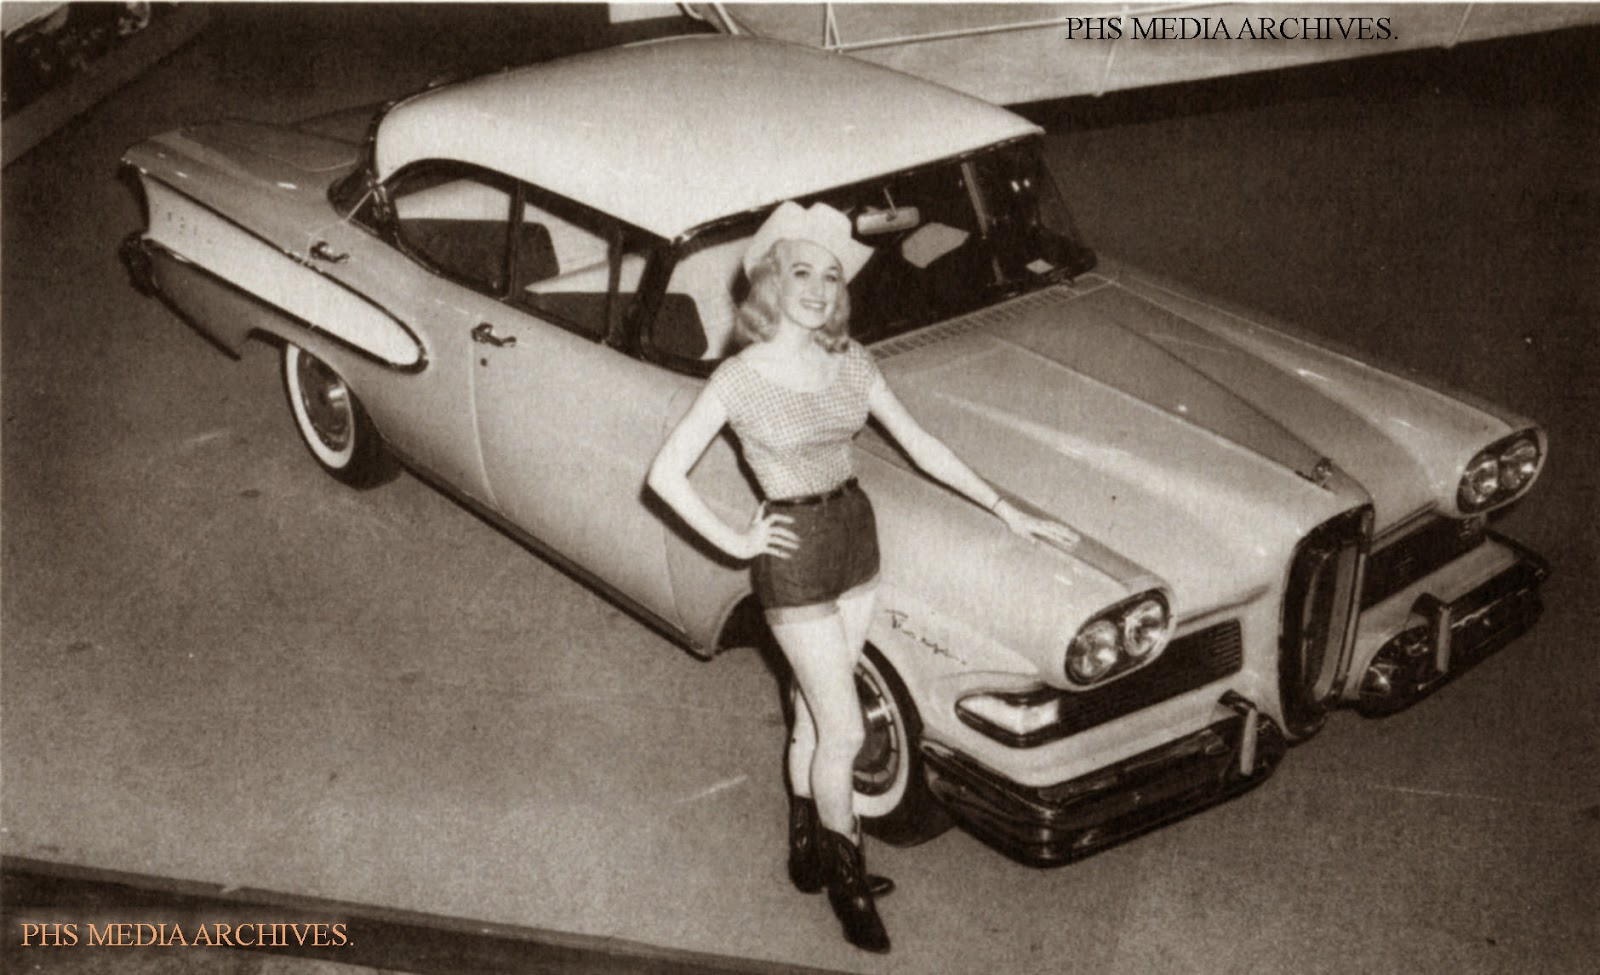 Phscollectorcarworld April 2014 Body Wiring Diagram For 1946 47 Chevrolet Dynamic Coupe Style 1007 Gingham Checked Blouse White Stetson And Cowgirl Jeans Provided A Very Saucy Picture The New Edsel Ranger This Was Cheesecake 1958